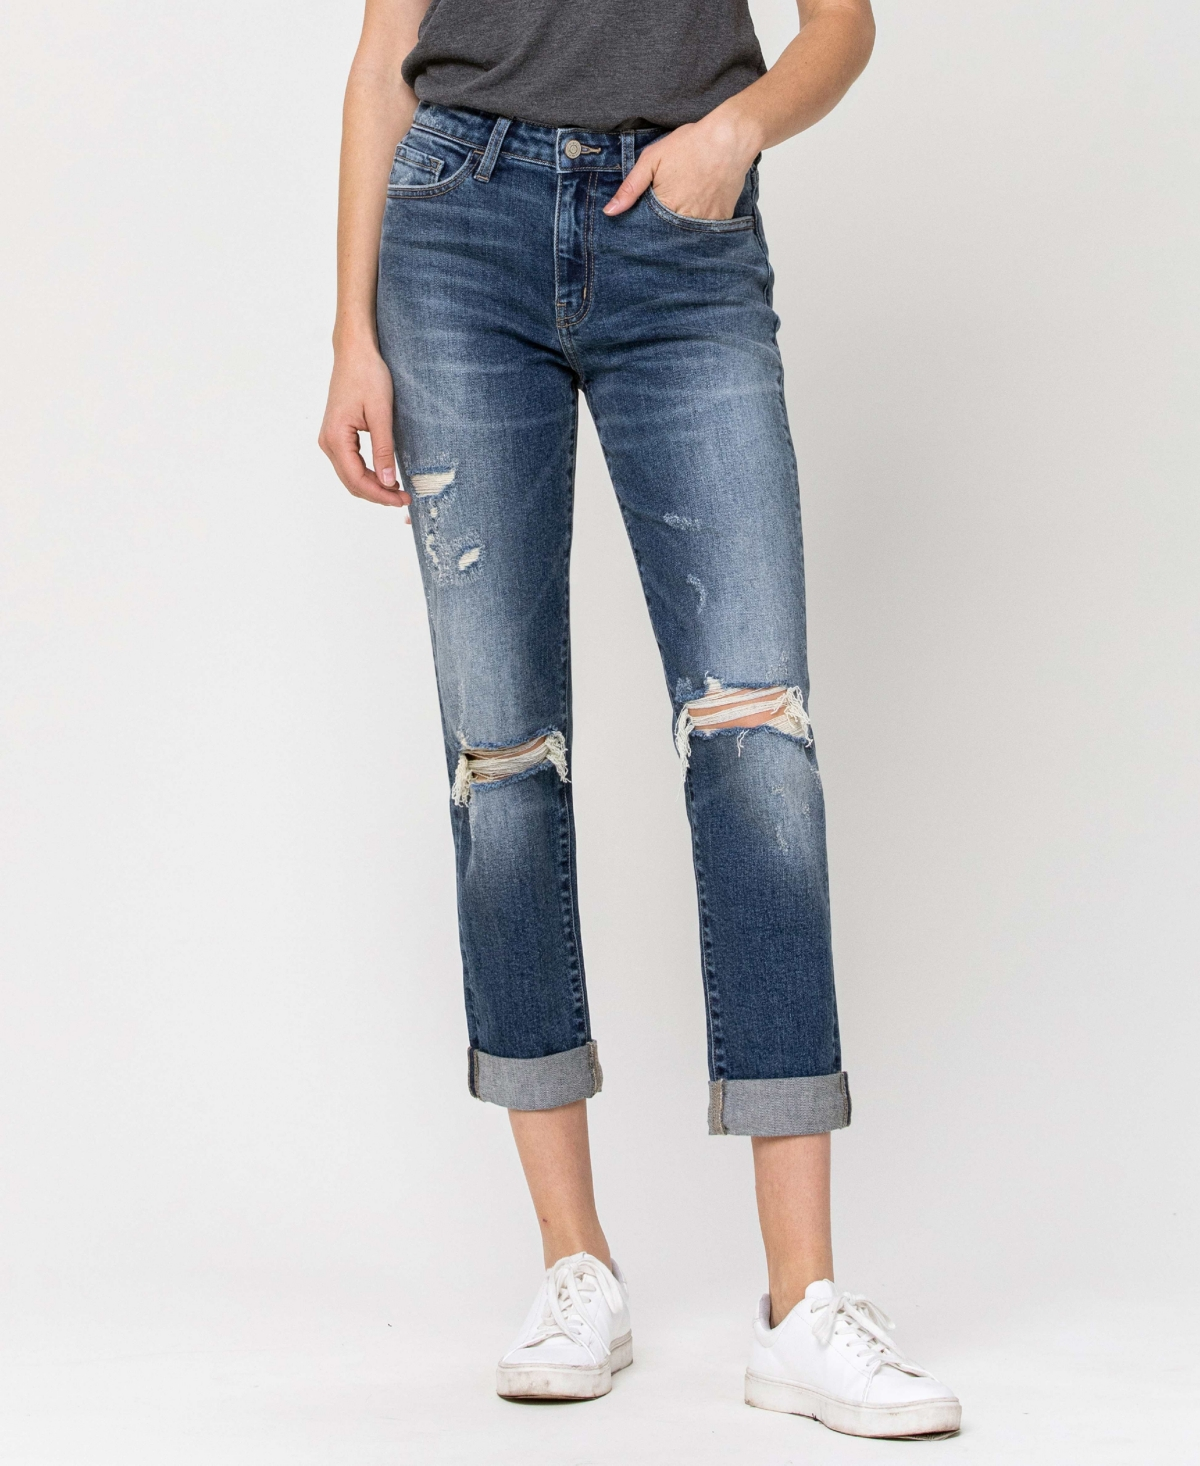 Women's Distressed Roll Up Stretch Mom Jeans